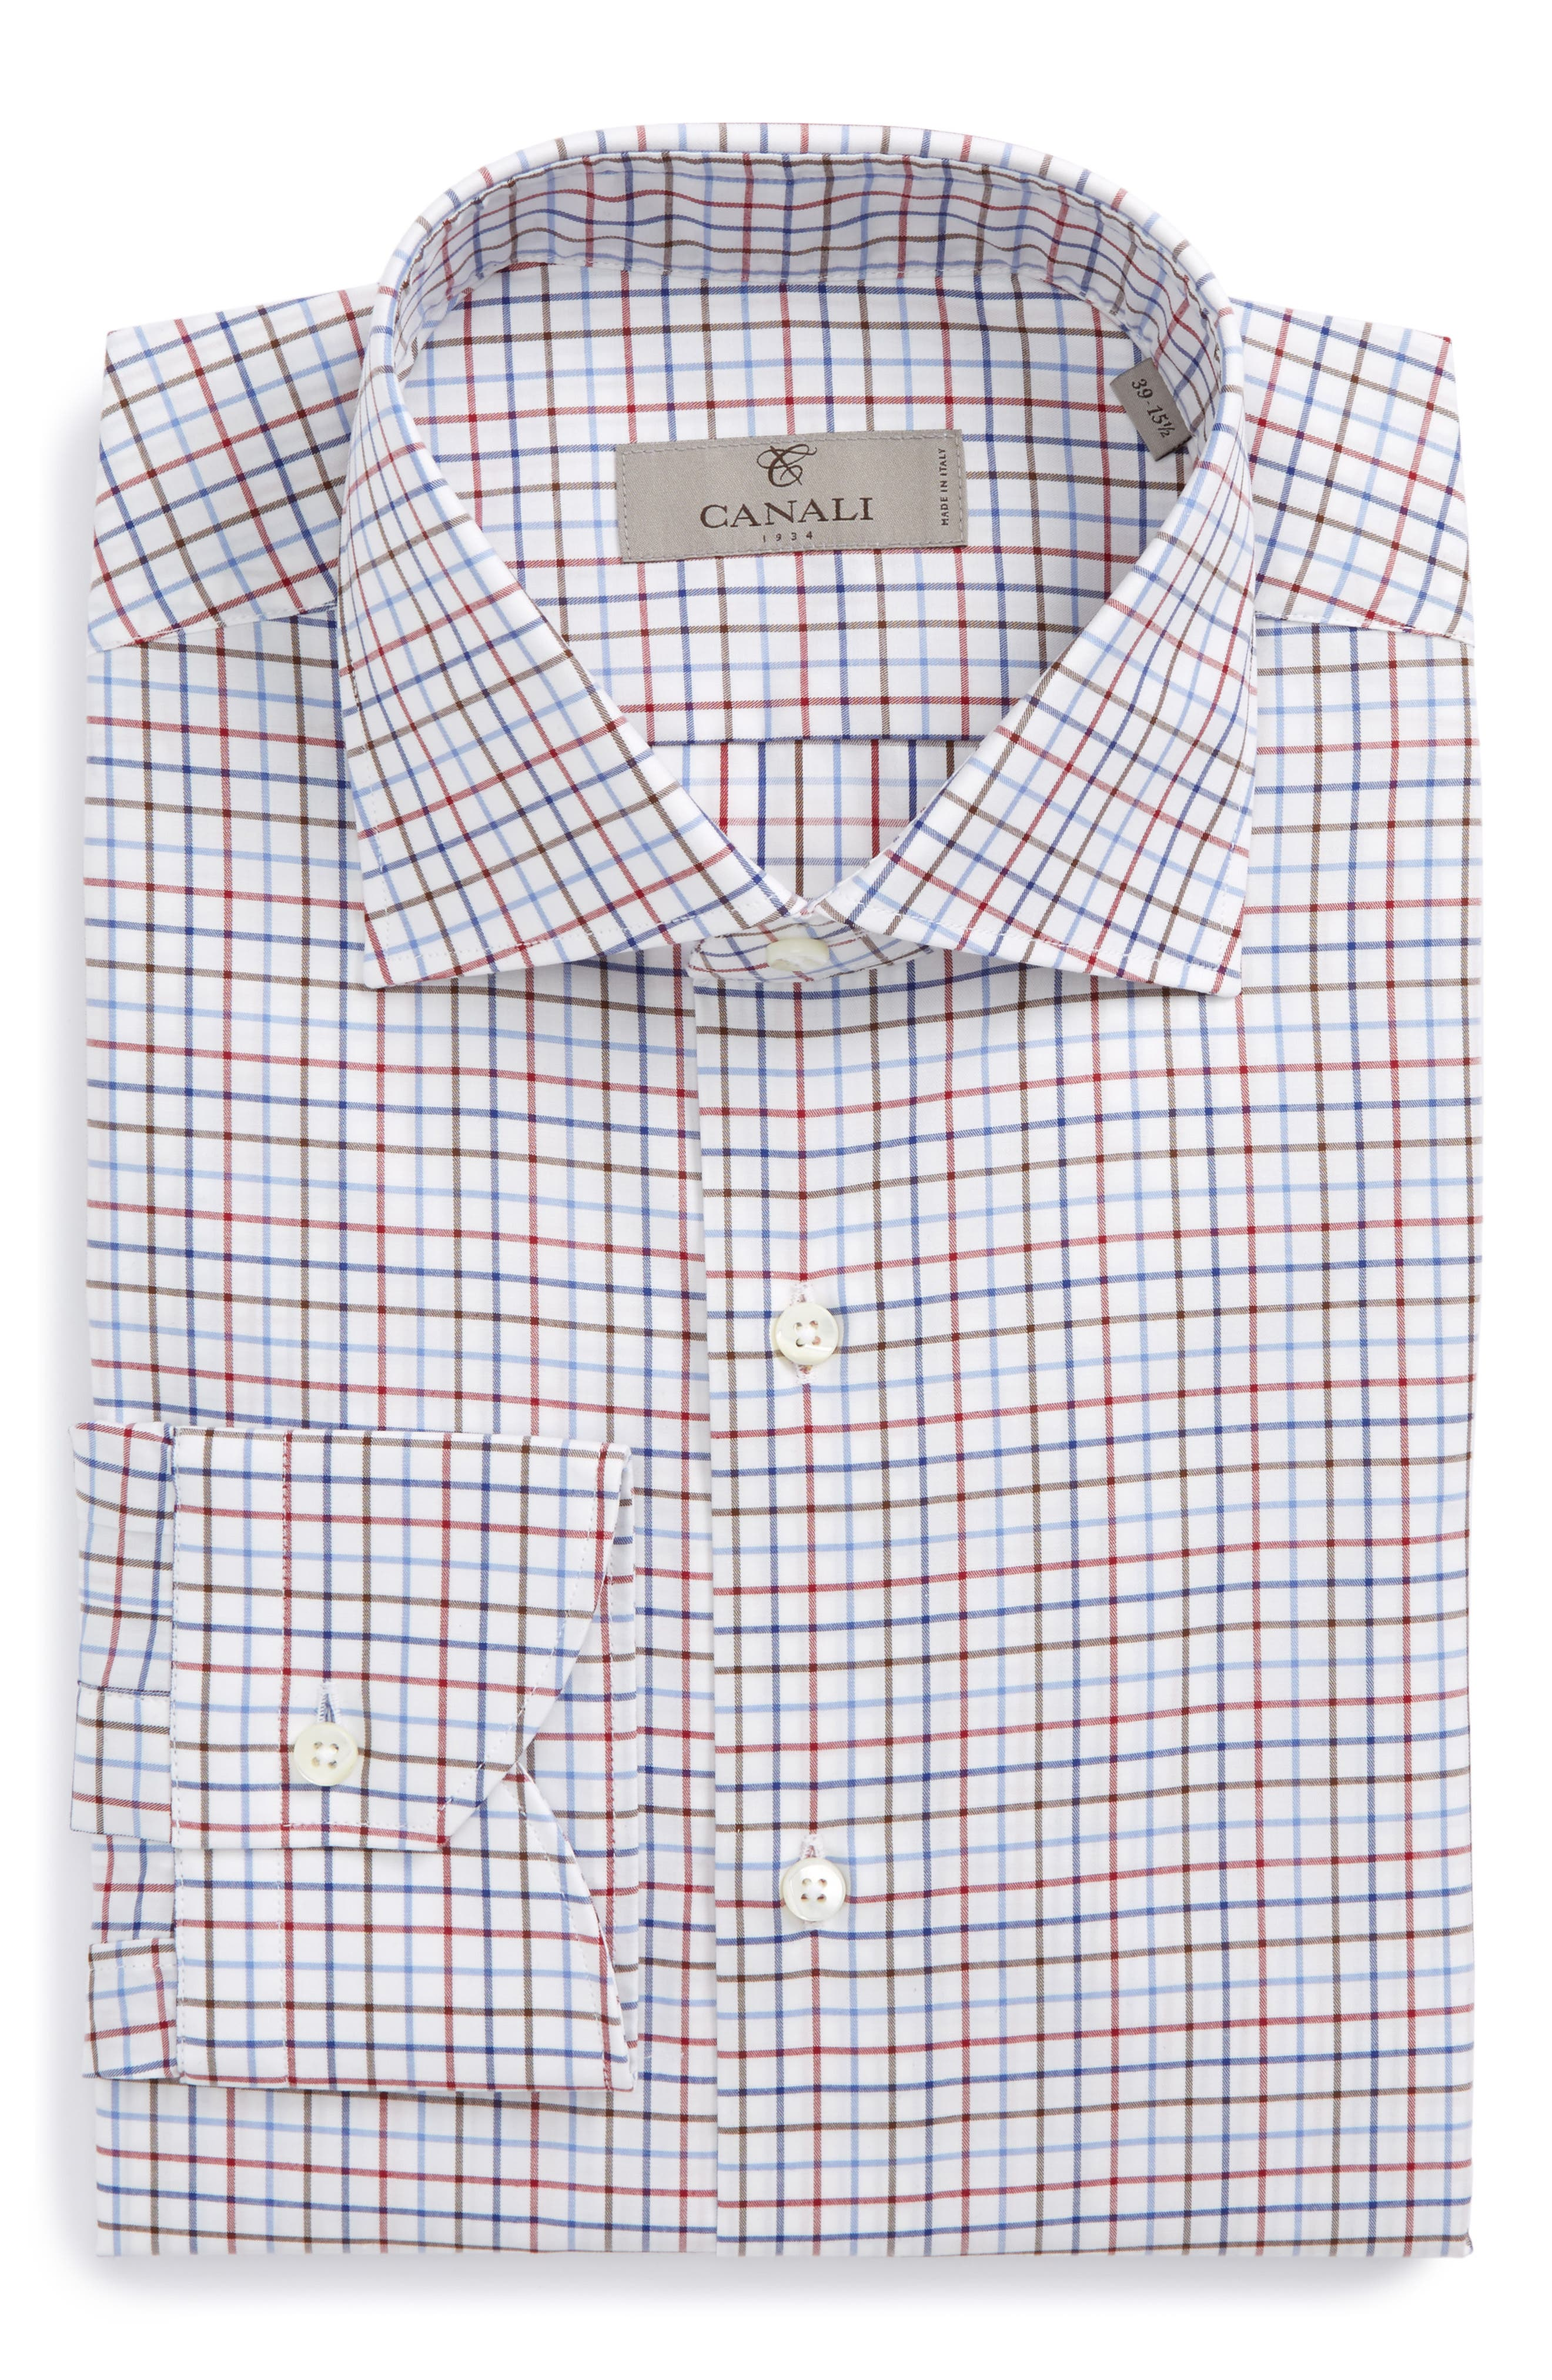 Regular Fit Check Dress Shirt,                         Main,                         color, Red